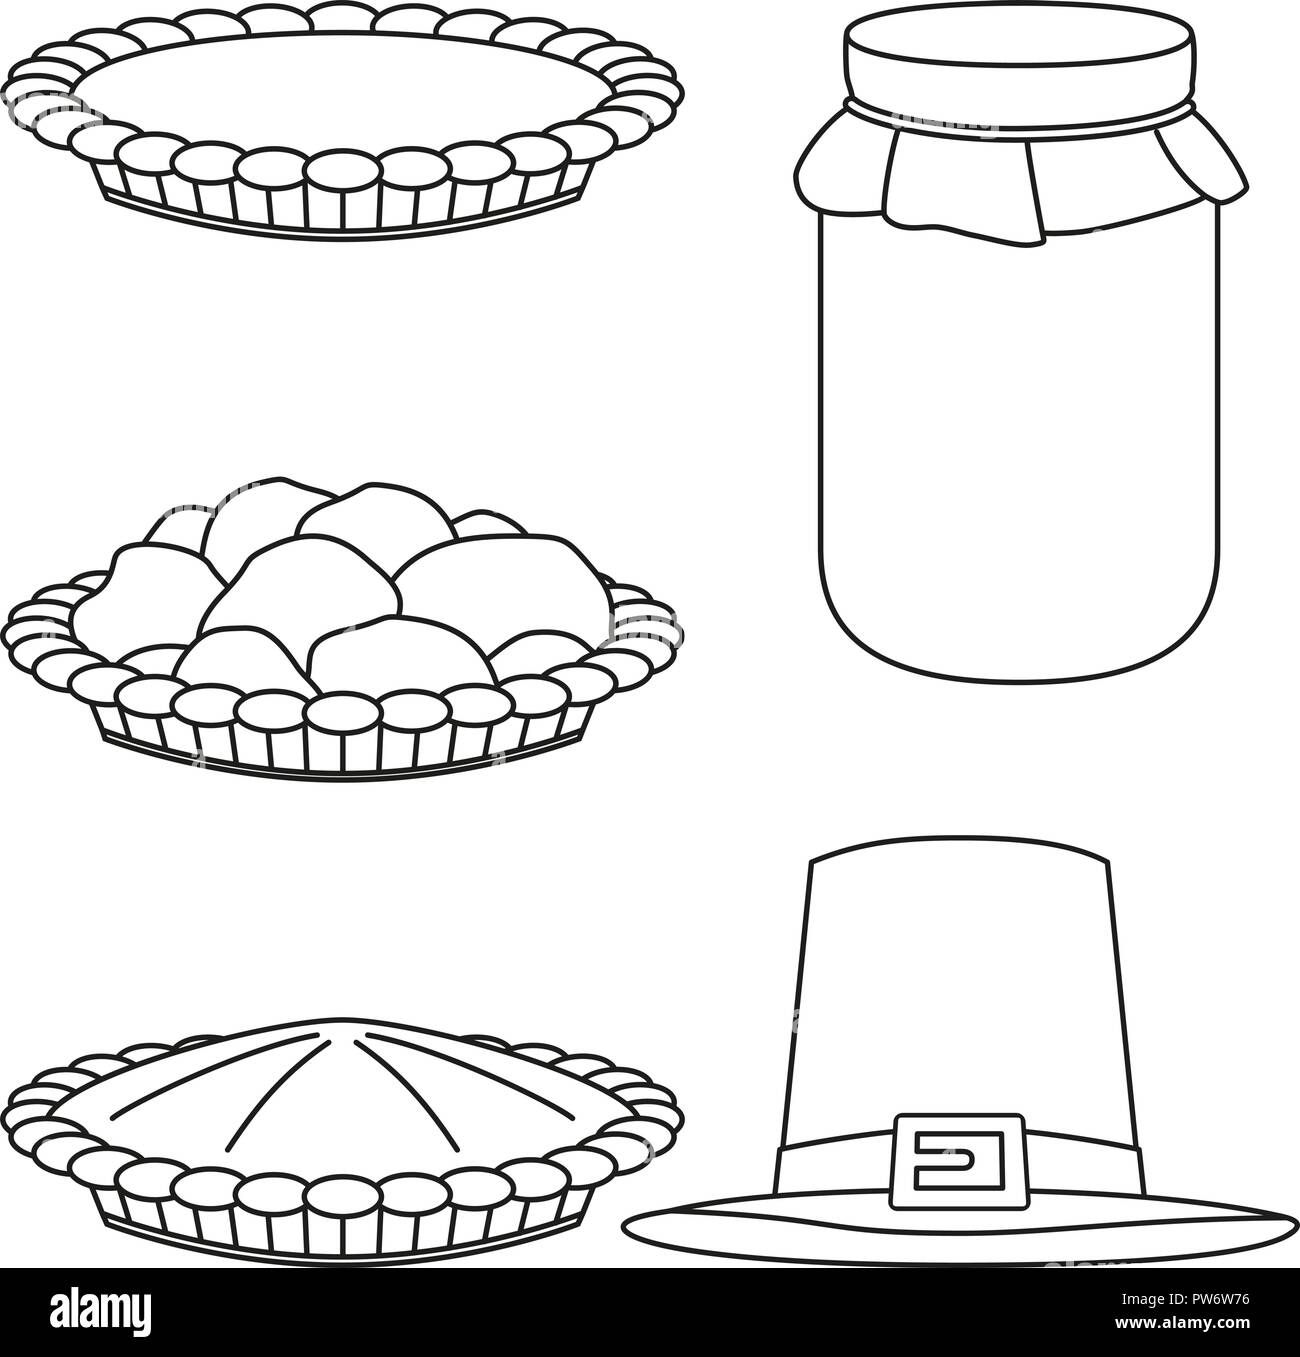 4 line art black and white fall harvest elements - Stock Vector